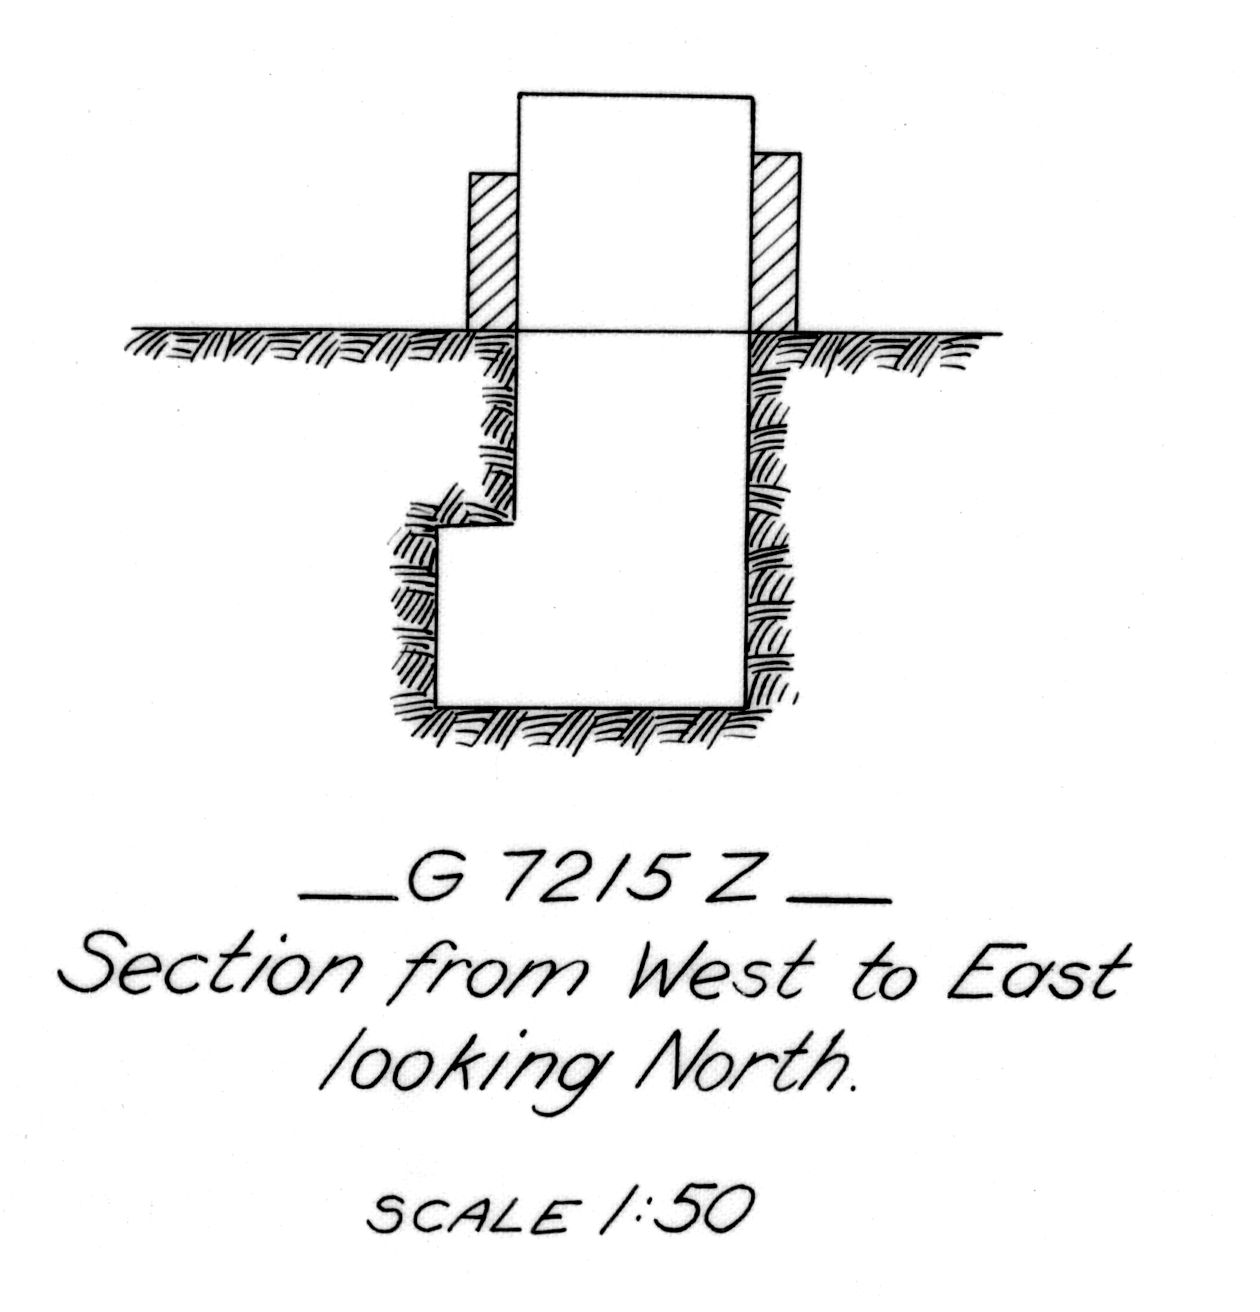 Maps and plans: G 7215, Shaft Z